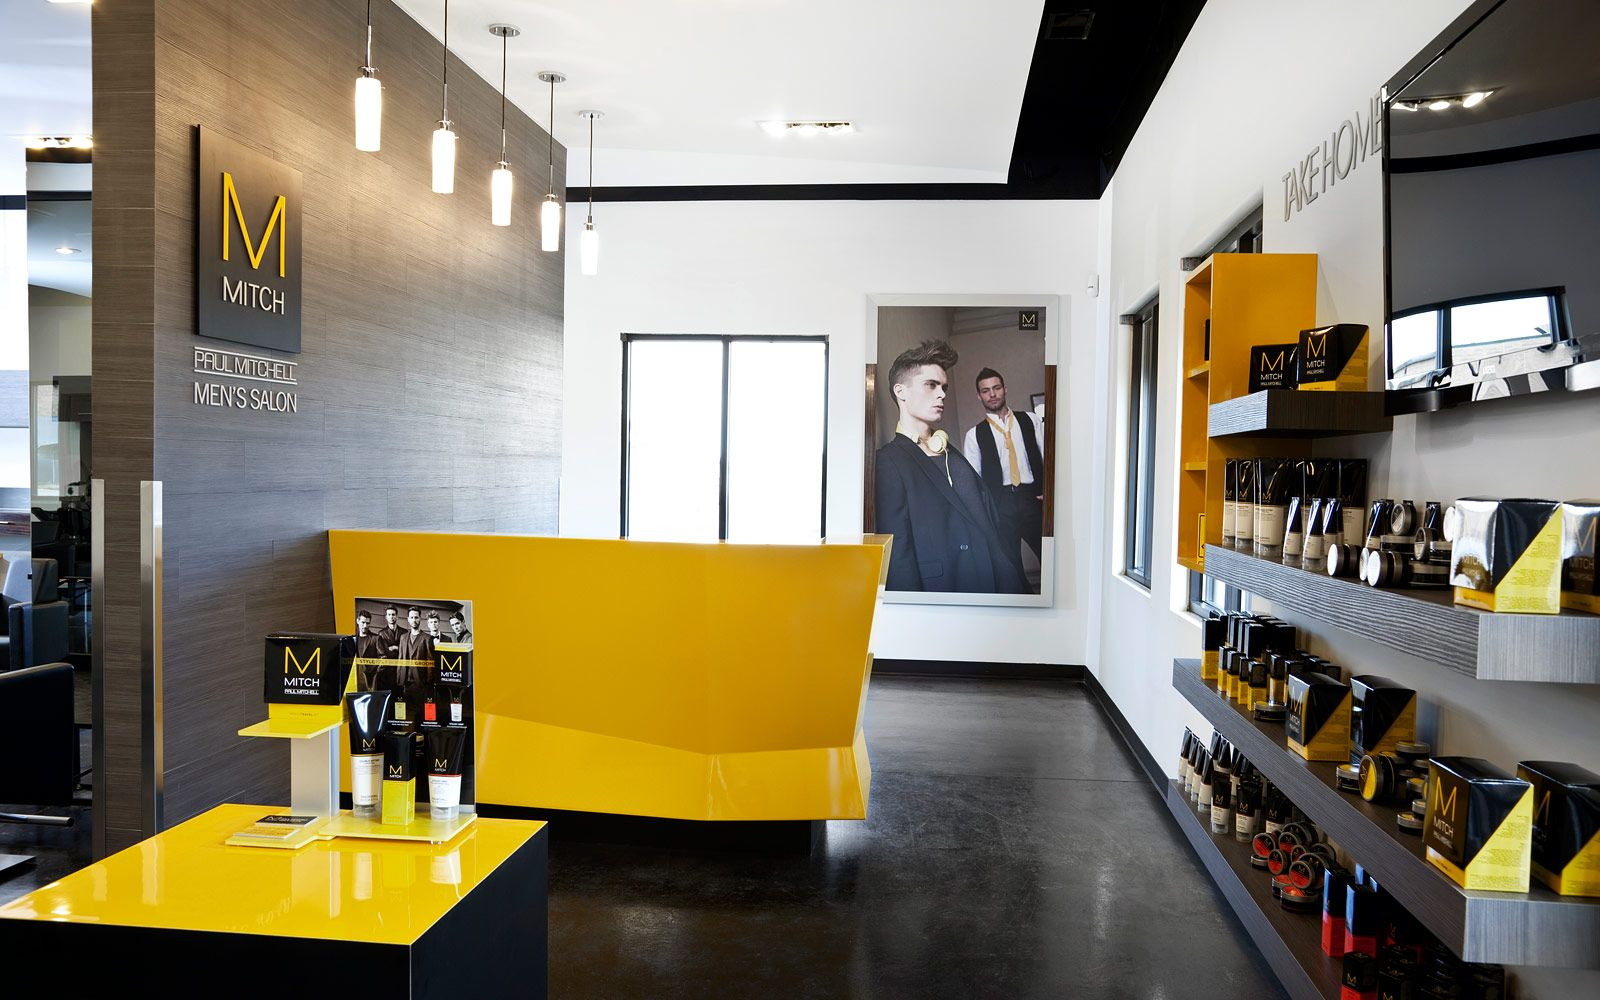 Paul mitchell salon images wadsworth design mitch a for A paul mitchell salon